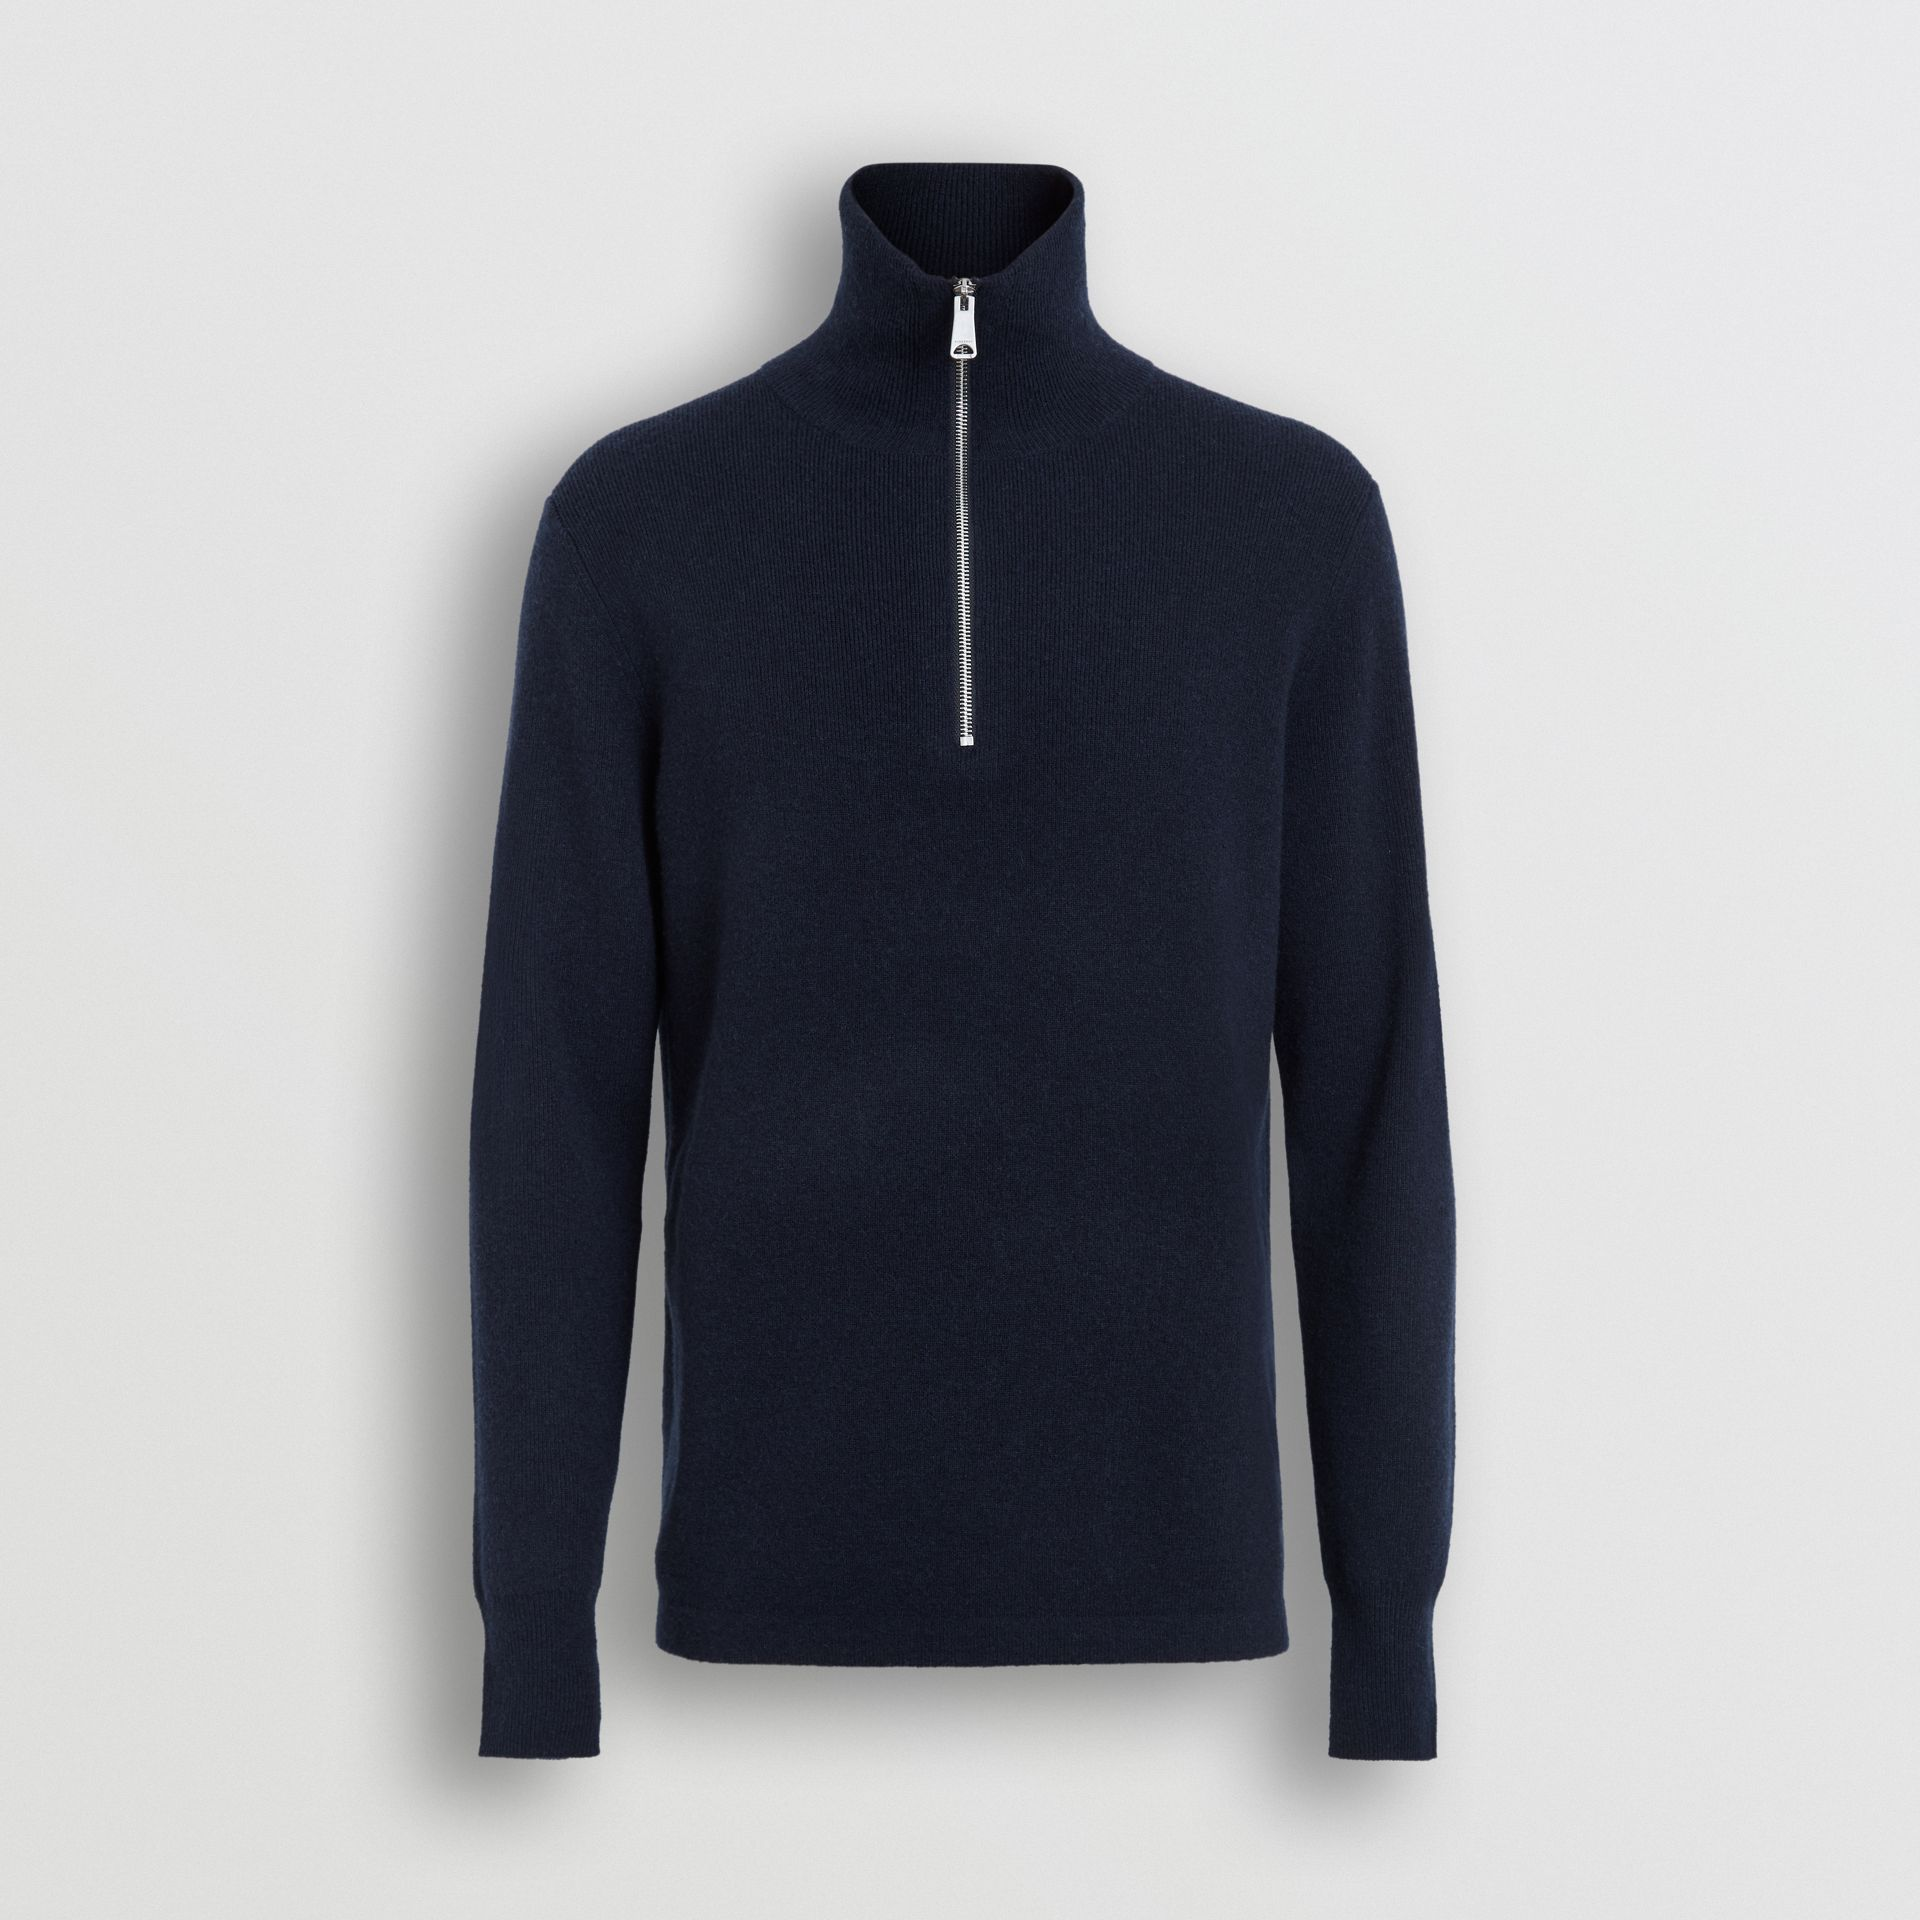 Rib Knit Cashmere Half-zip Sweater in Navy - Men | Burberry United Kingdom - gallery image 3